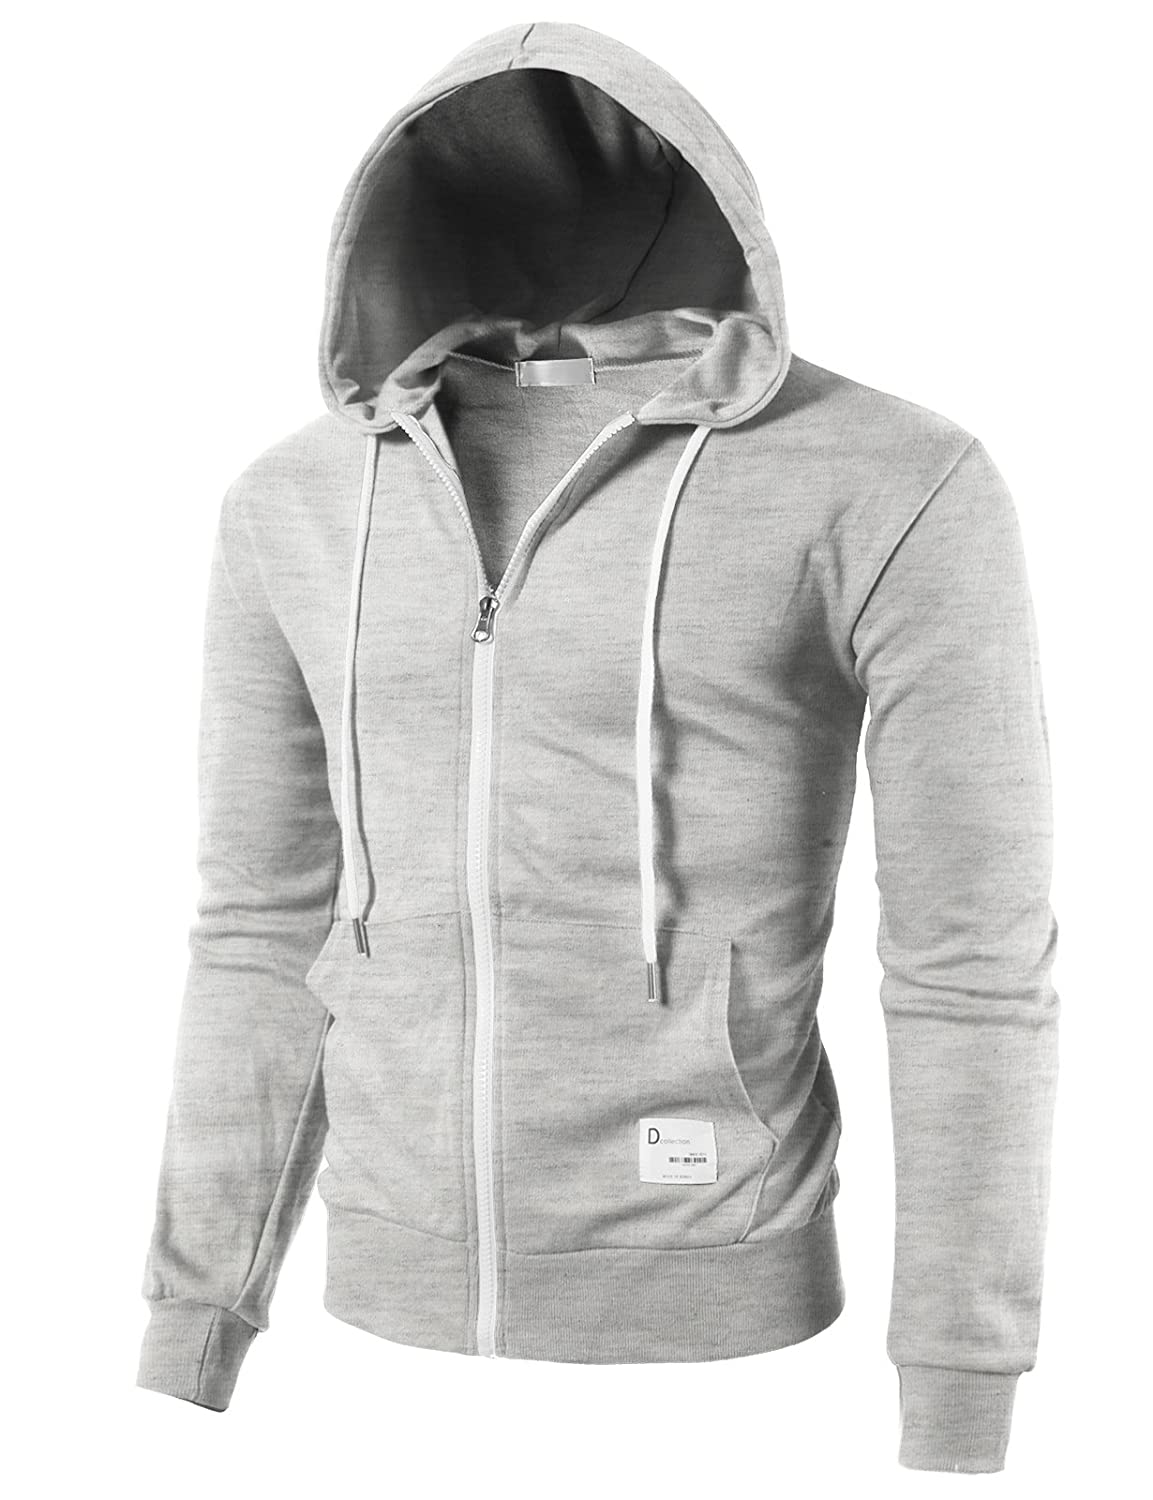 H2H Mens Casual Zip-up Hoodie Double Cotton Lightweight Hooded of #CMOHOL042